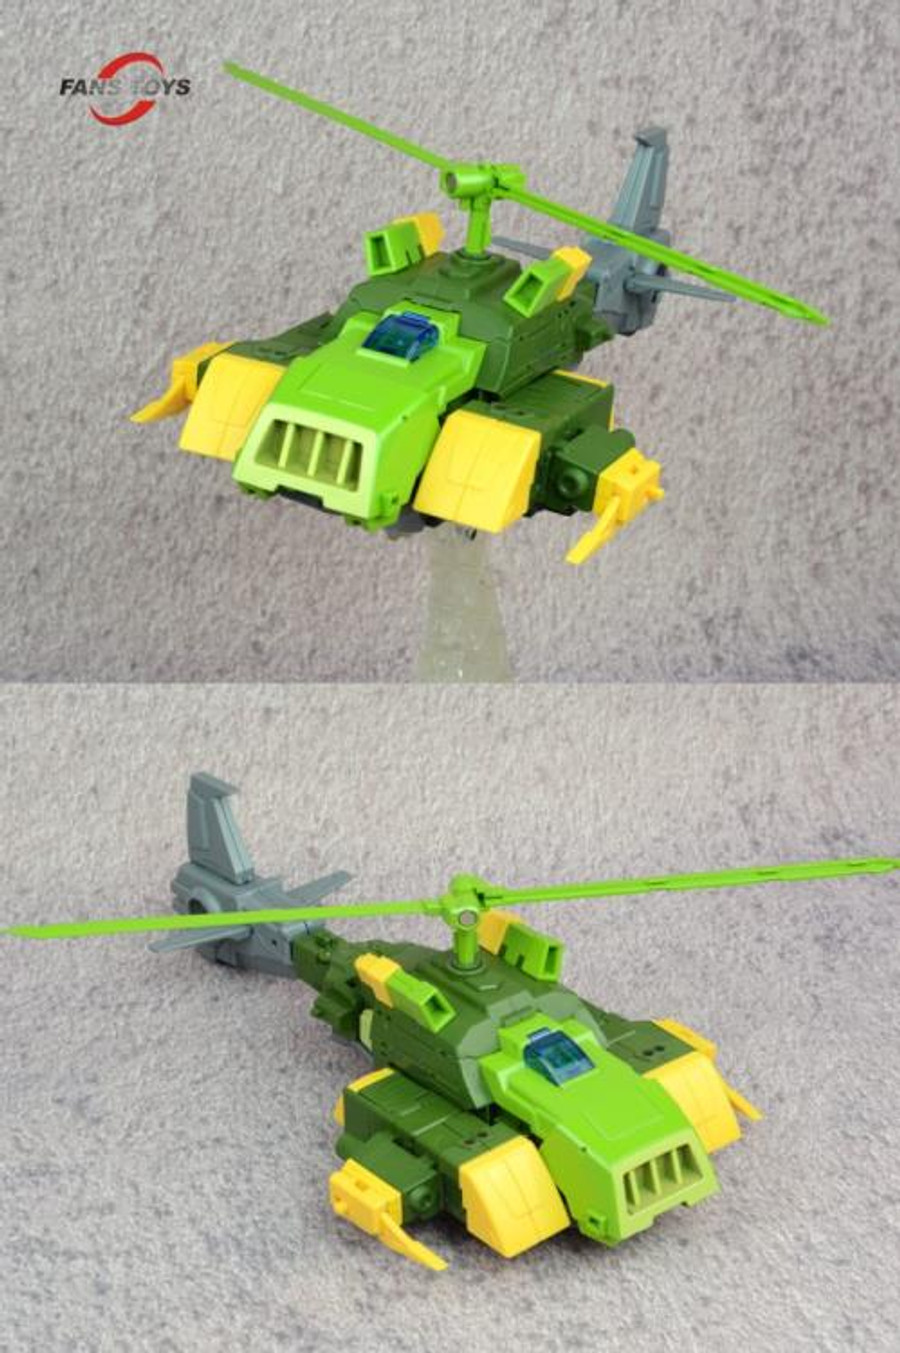 Fans Toys - FT-19 Apache Re-issue